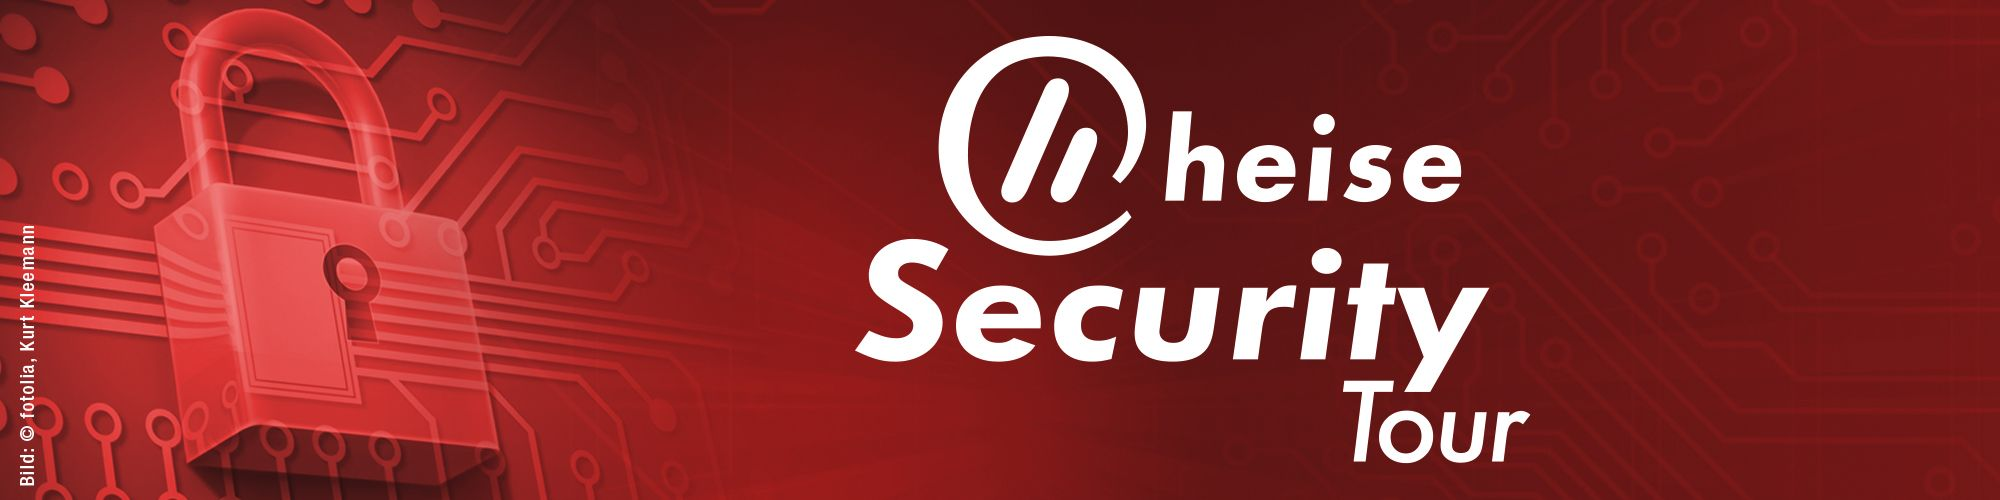 heise Security Tour